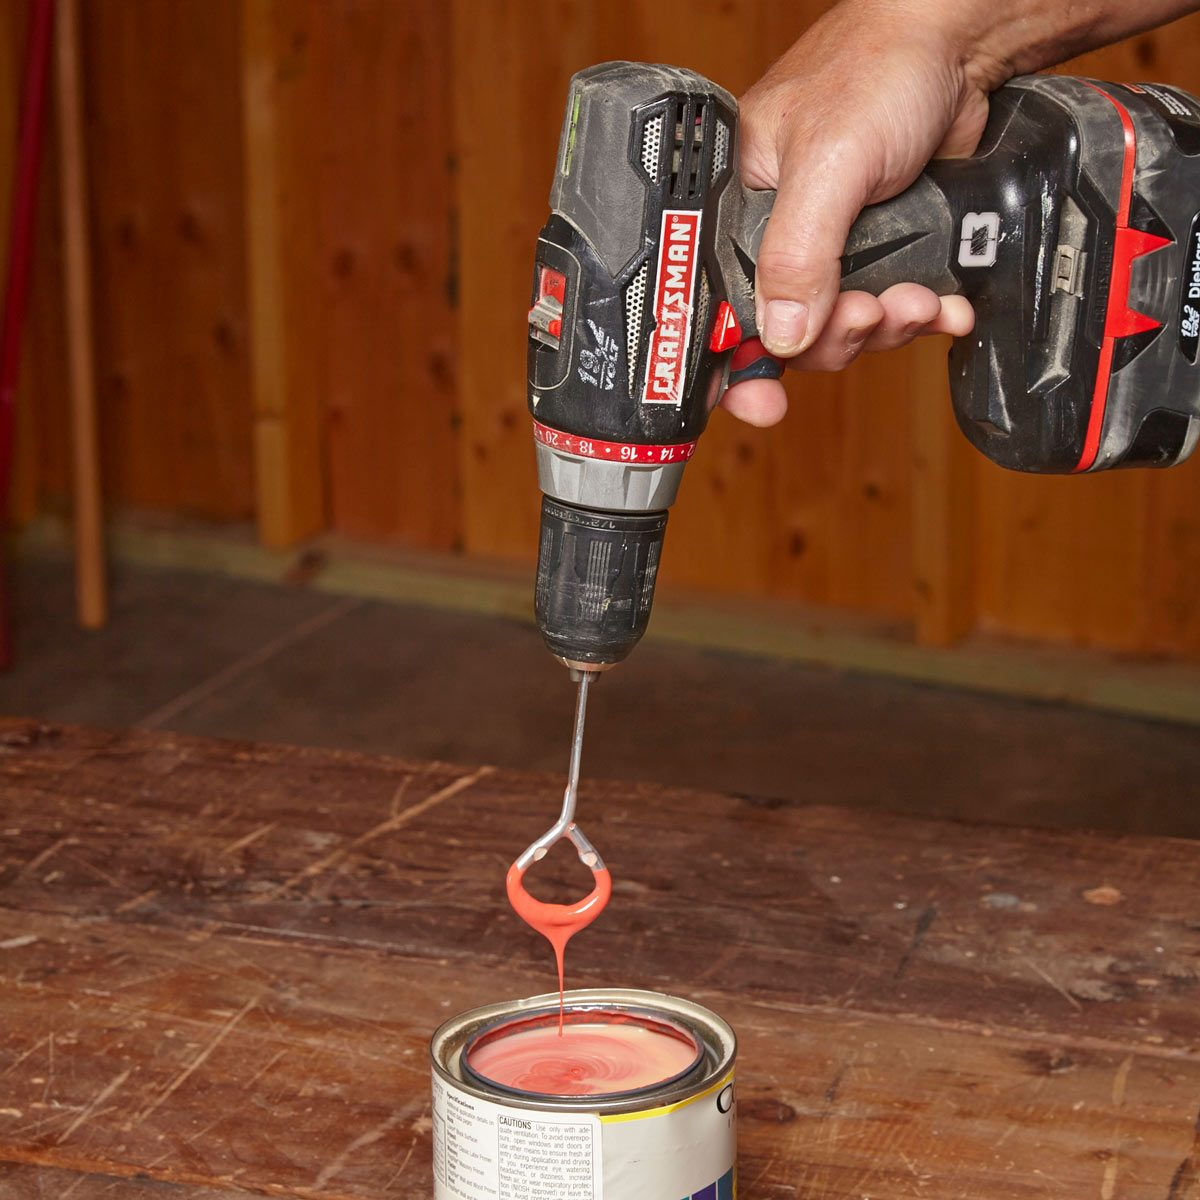 stir it up — workshop tip from the family handyman